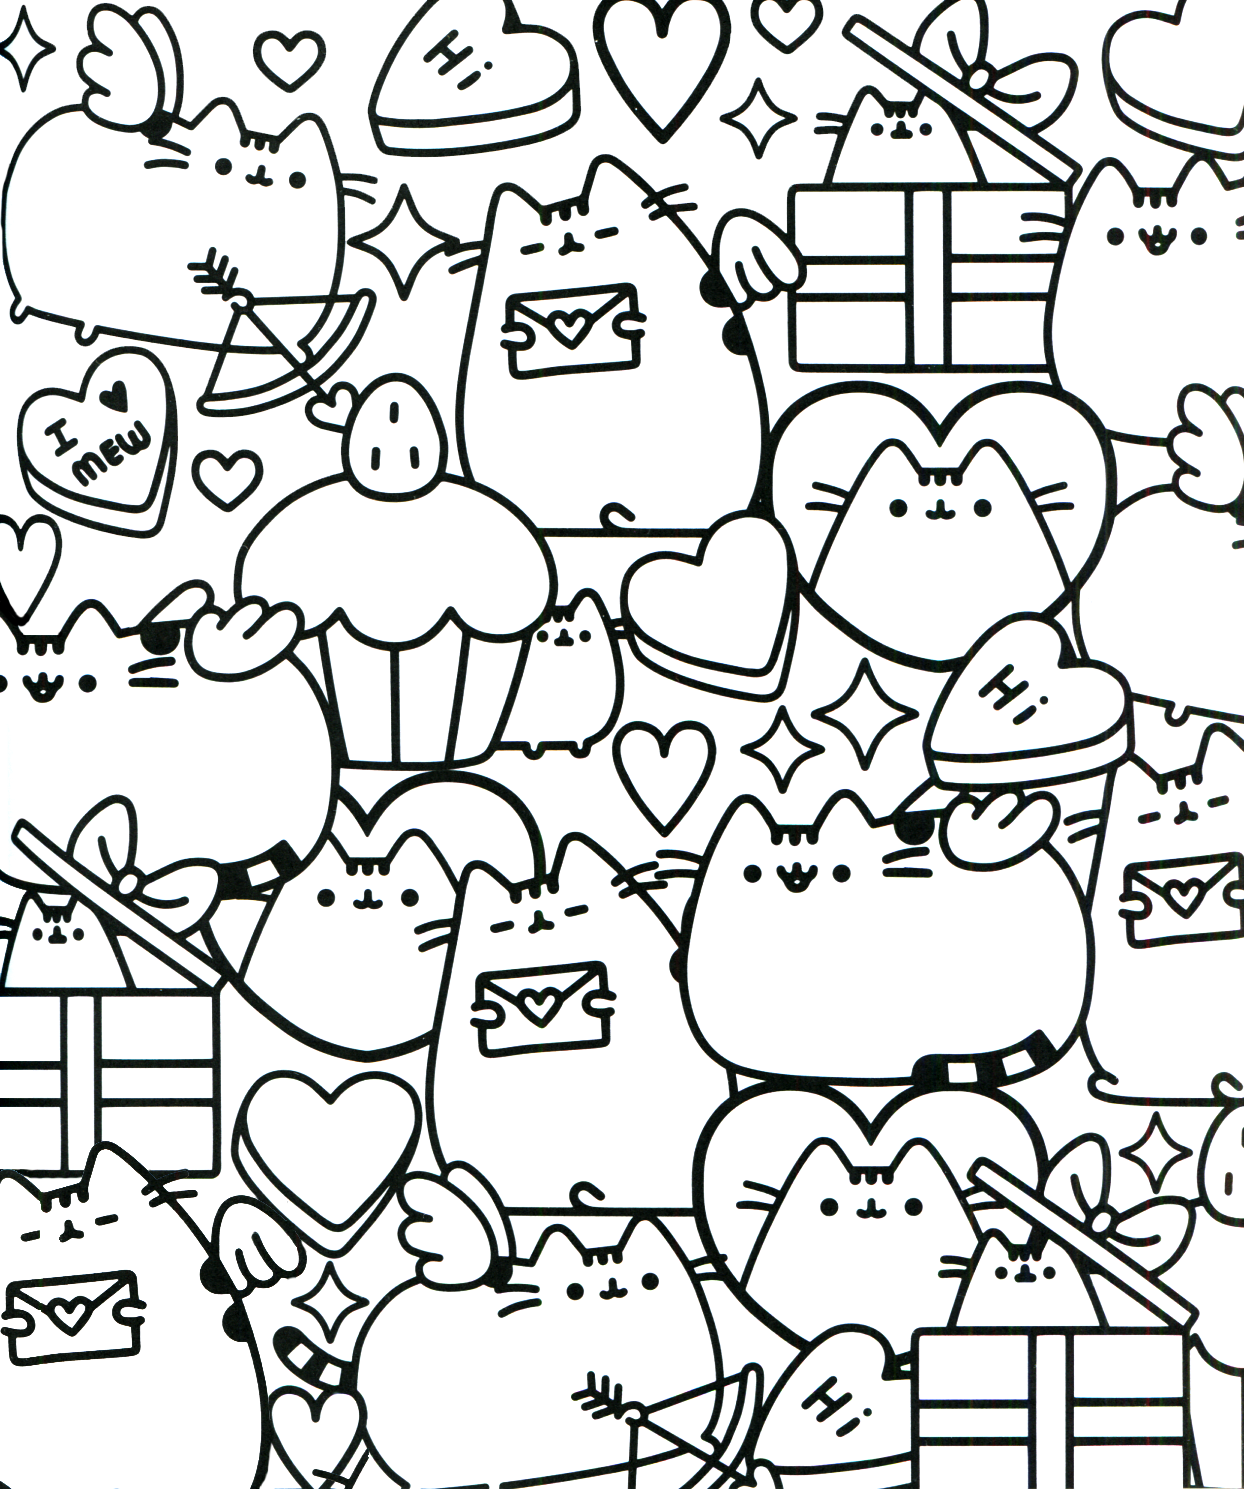 Pusheen Coloring Book Pusheen Pusheen The Cat Pusheen Coloring Pages Valentine Coloring Pages Unicorn Coloring Pages